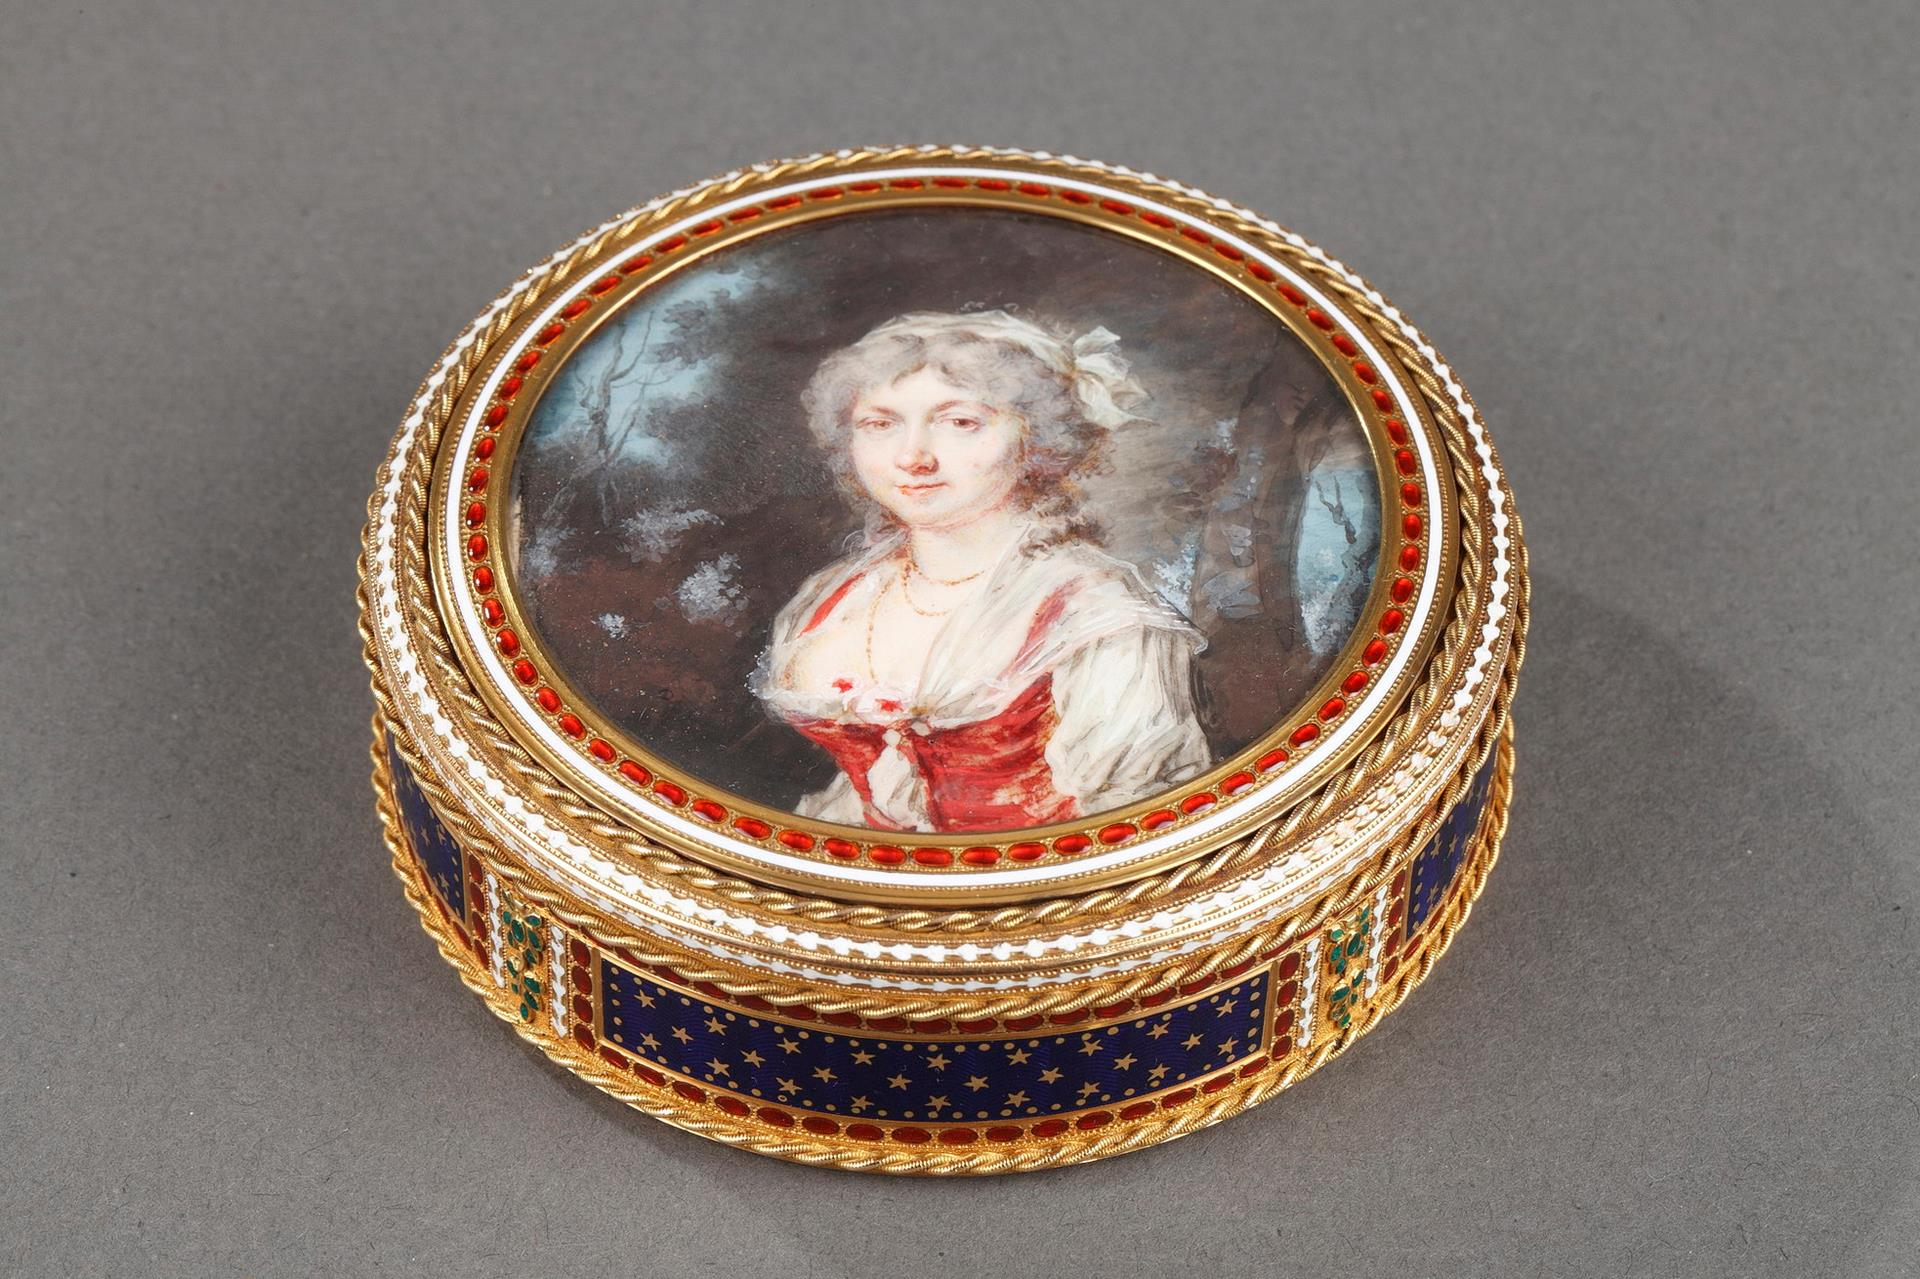 GOLD AND ENAMEL BONBONNIERE WITH MINIATURE ON IVORY.<br/> LATE 18TH CENTURY GERMAN CRAFTSMANSHIP.